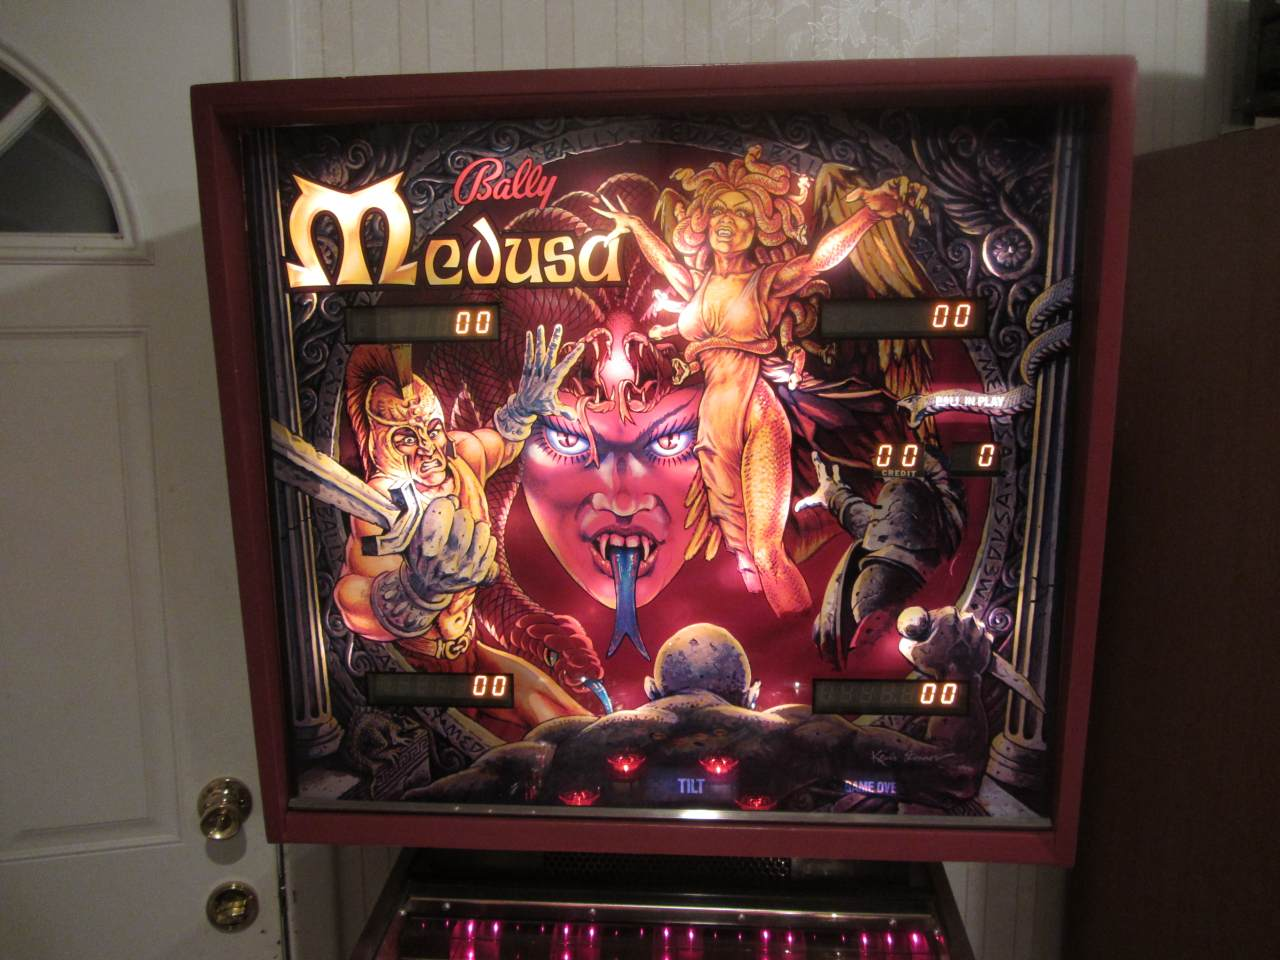 Bally Medusa Pinball Machine 2 Pinballmania Llc